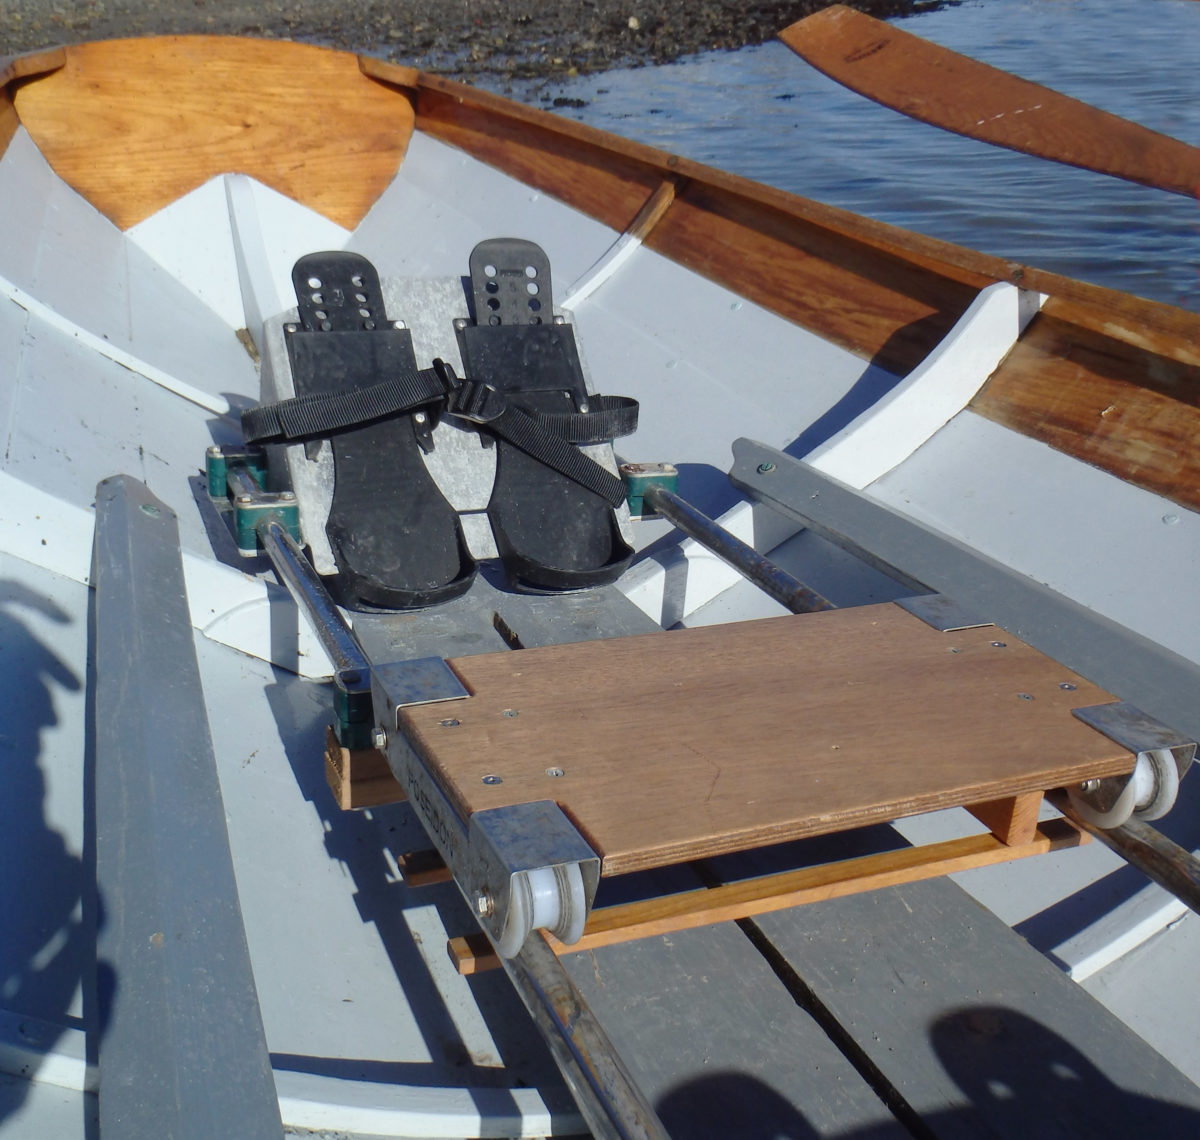 The seats are supplied without pads. Those are left to the rower to select to suit individual preferences.